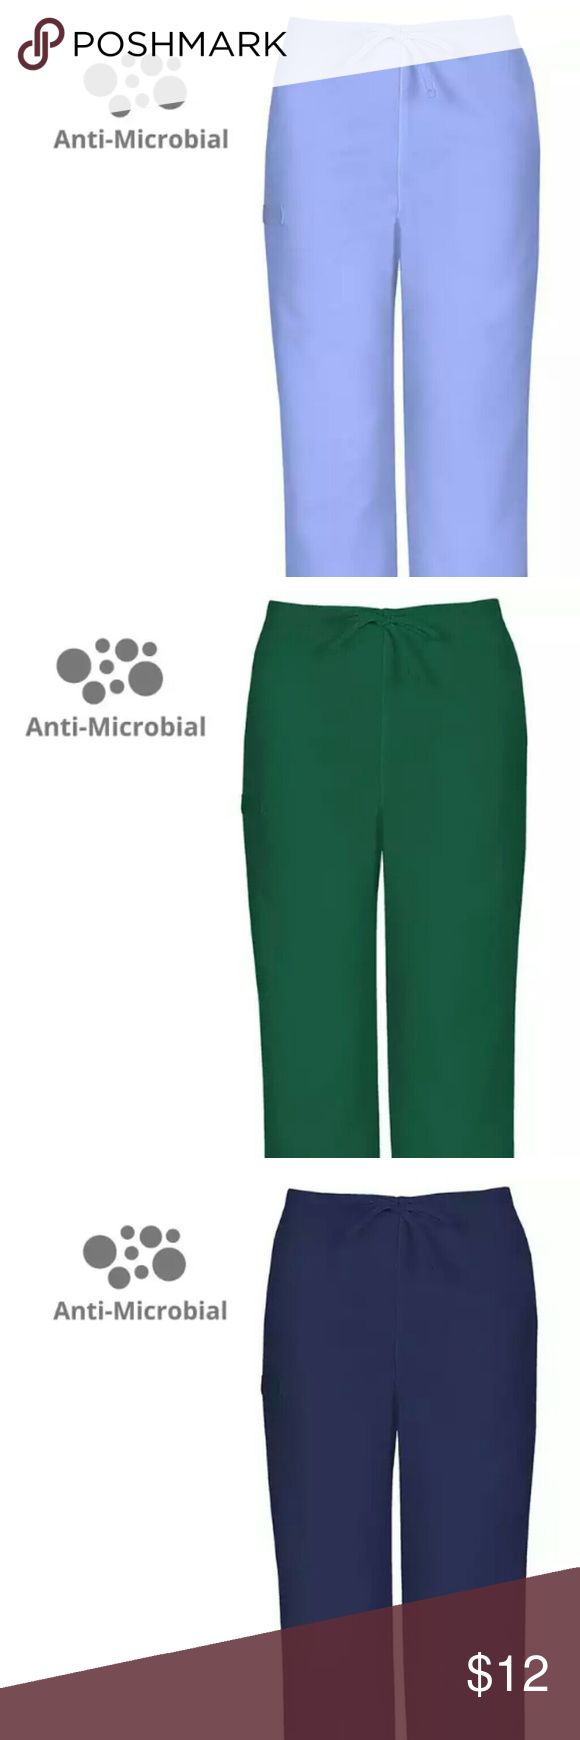 Antimicrobial Scrub Bottoms-Blue, Green, Ciel Blue Cherokee Antimicrobial Workwear Flex Scrub Bottoms Style# 34100A  (1) Medium- Dark Blue (1) Medium- Hunter Green (1) Medium- Ceil Blue  -Antimicrobial Protection Barrier -Two Slash Pockets with Instrument Loop on back -Adjustable Drawstring -65% Polyester/35% Cotton  *Pictures represent style and actual colors of garment*  -New with tags! -Never been worn! -No damage, rips, stains! -Only ONE of each! -No trades/trading or offline…